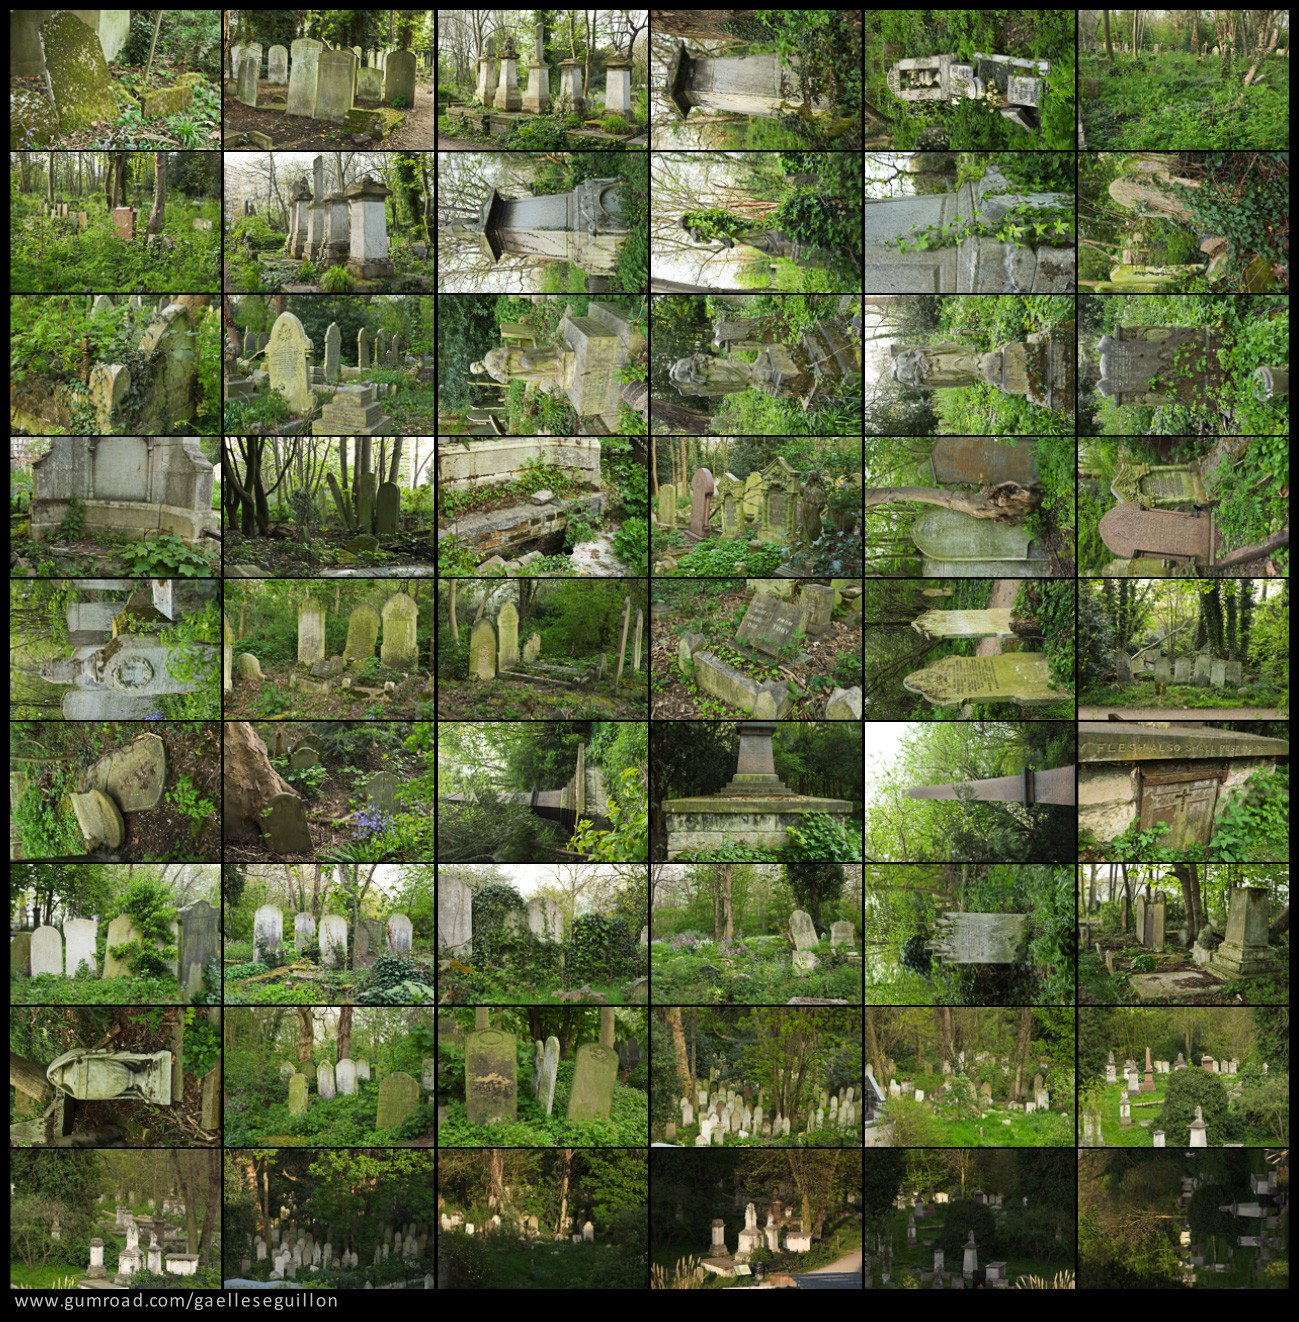 Overgrown cemetery preview.jpg 3